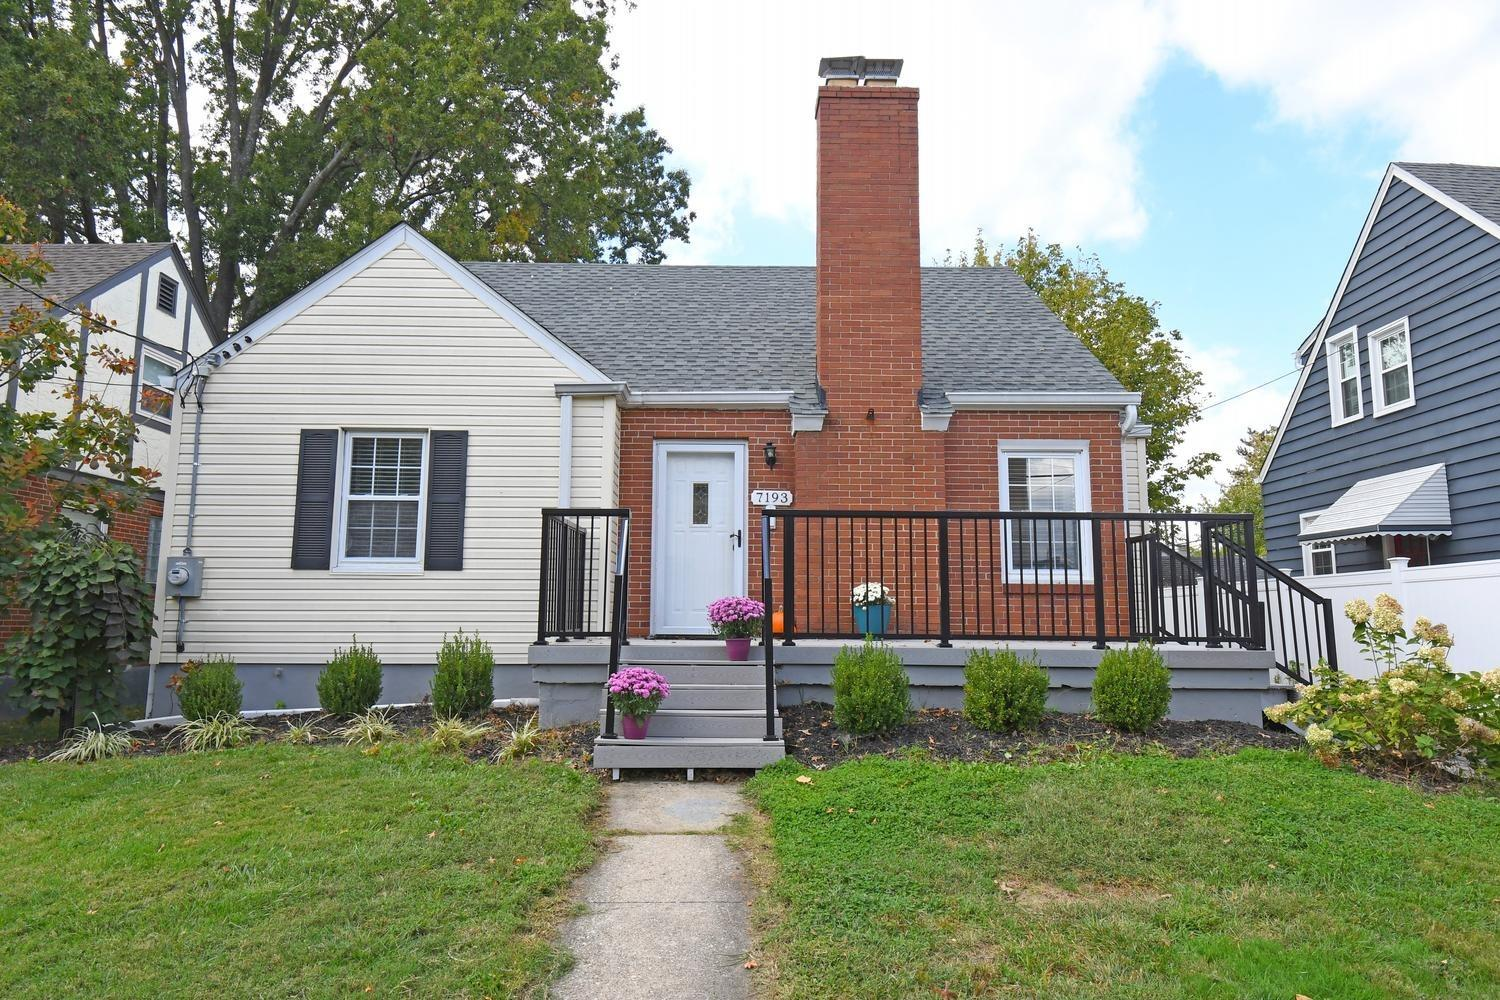 7193 Maryland Avenue, Deer Park, Ohio 45236, 2 Bedrooms Bedrooms, 5 Rooms Rooms,1 BathroomBathrooms,Single Family Residence,For Sale,Maryland,1718978